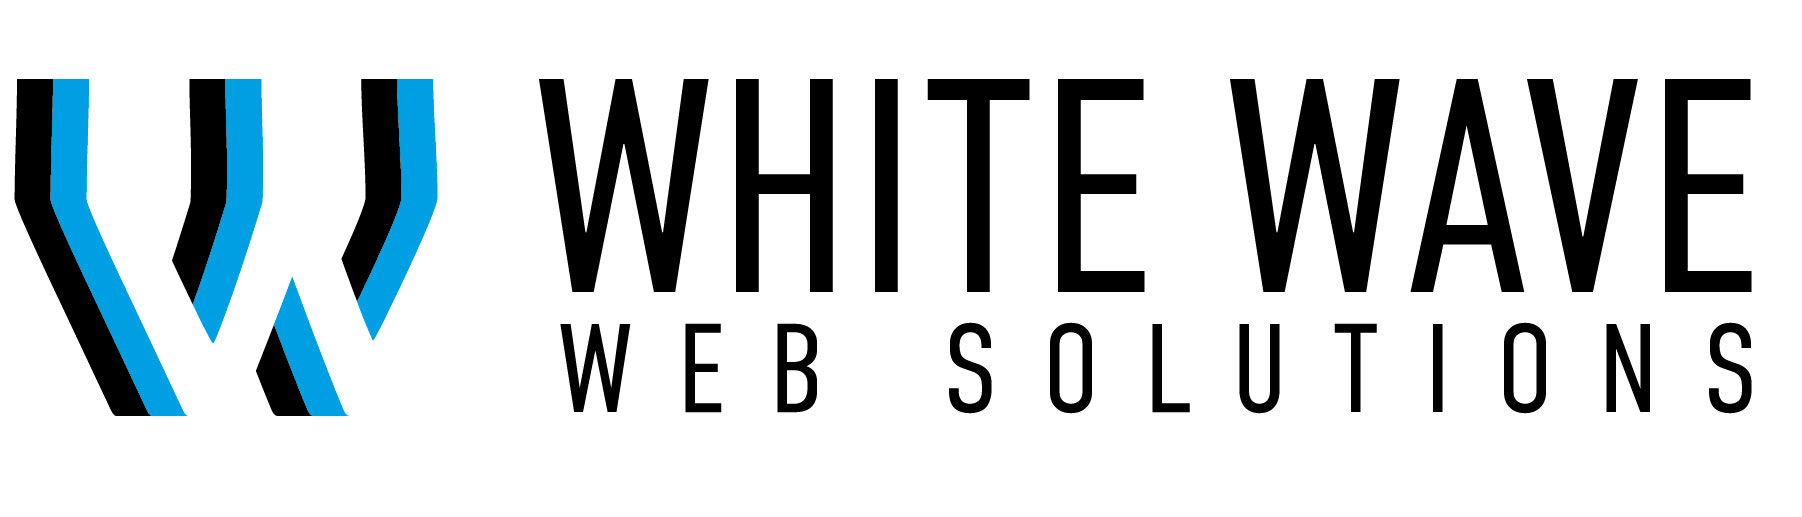 White Wave Web Solutions